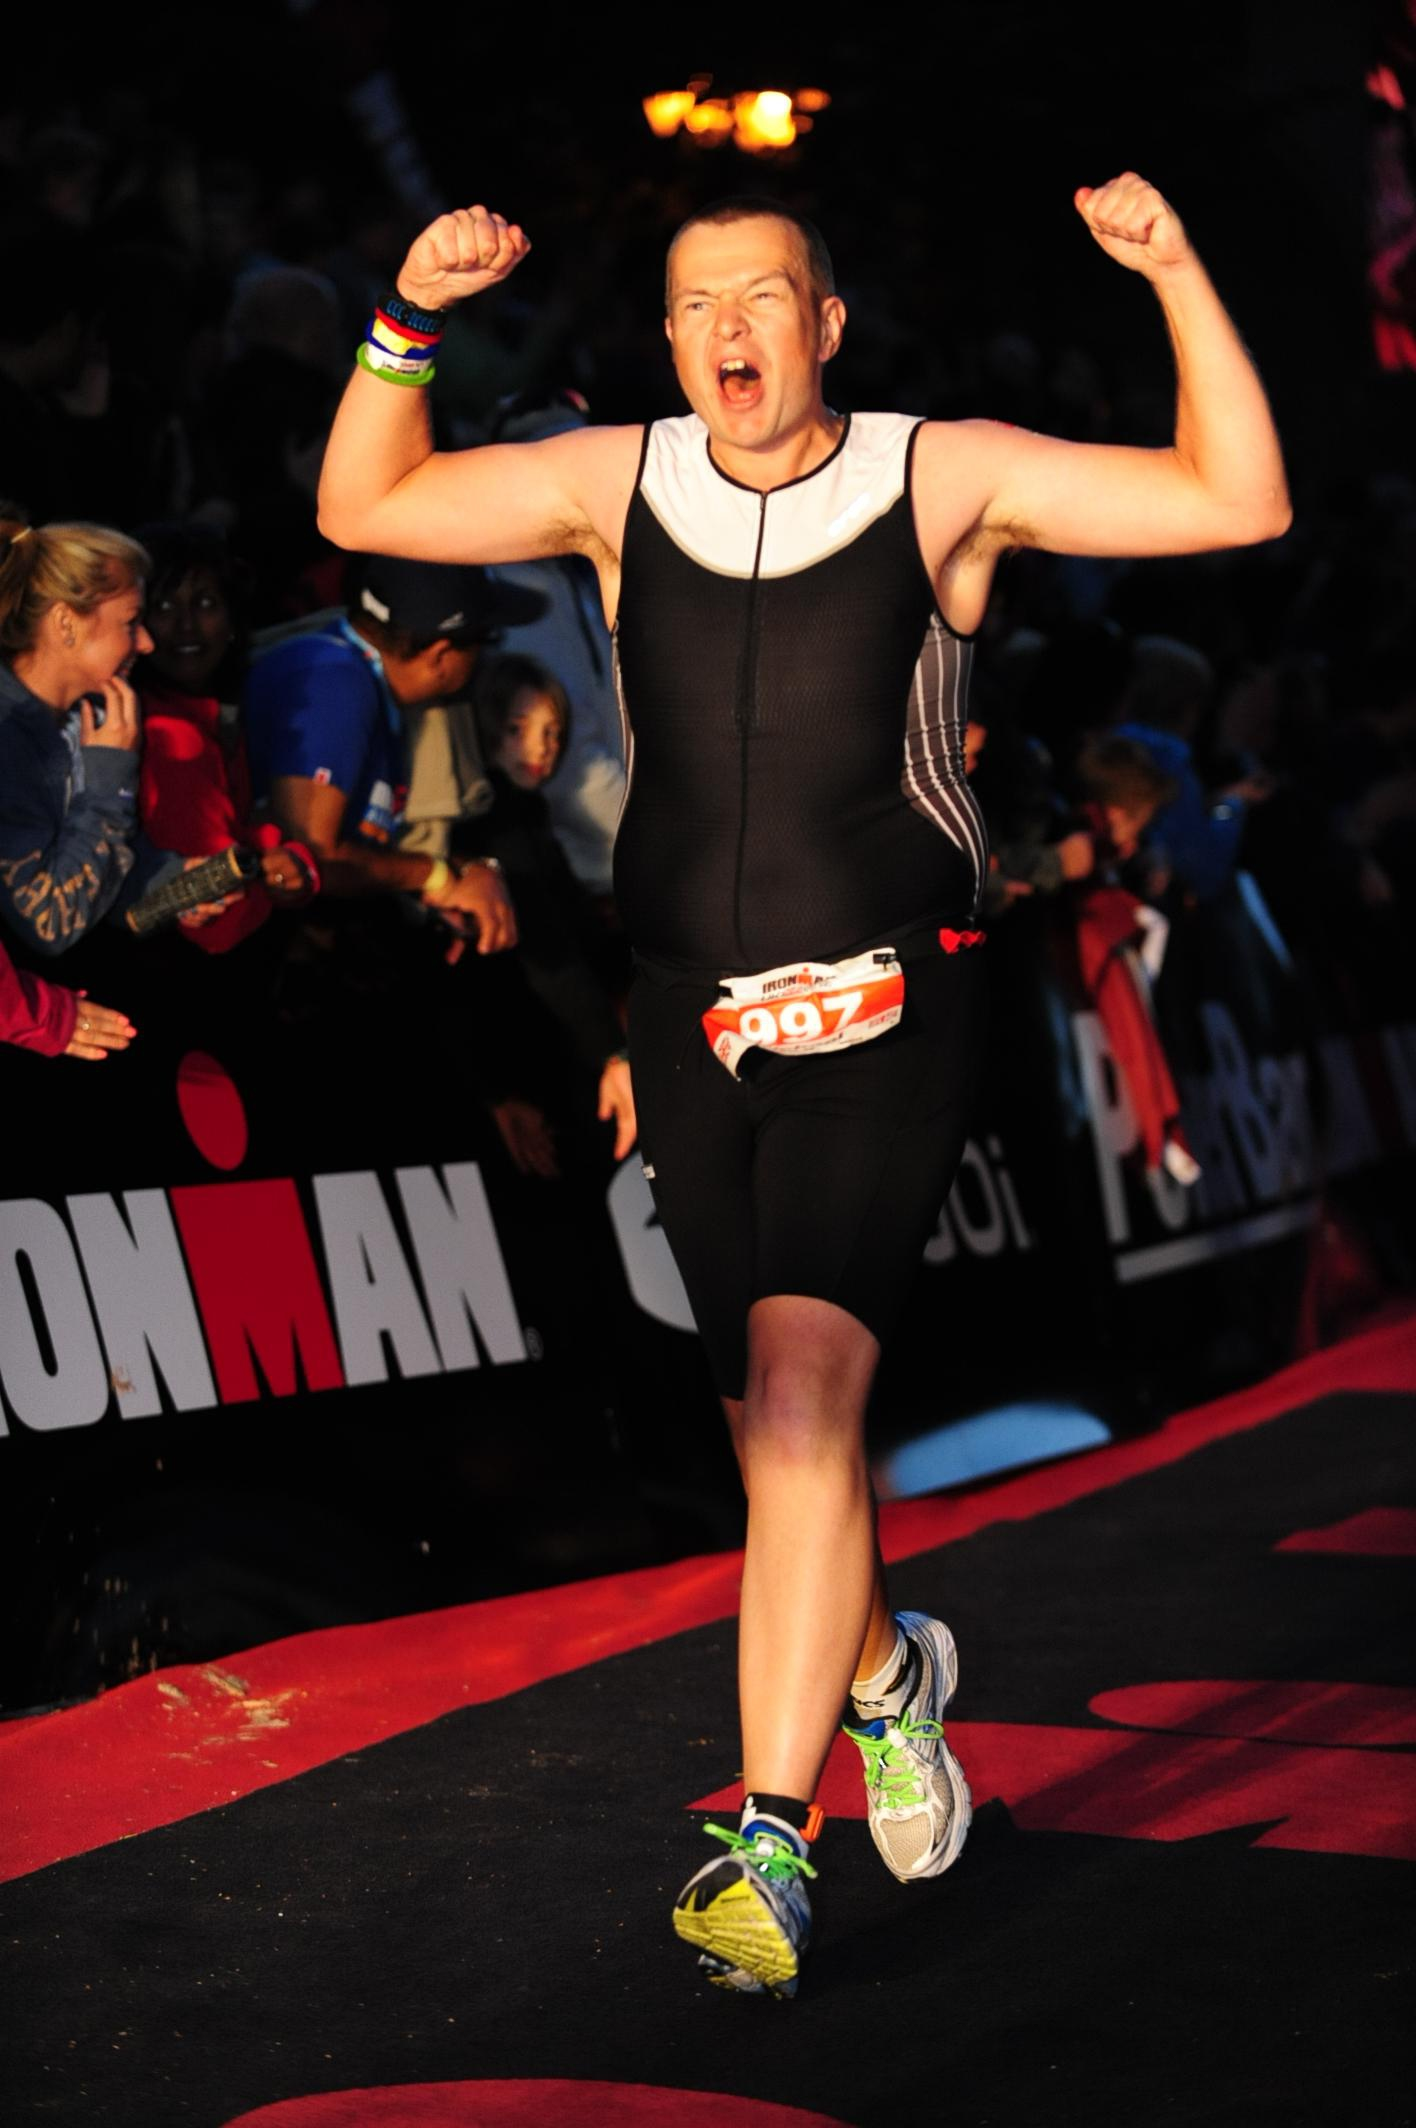 Michael Seddon  Ironman UK 2015 - 15:35:51